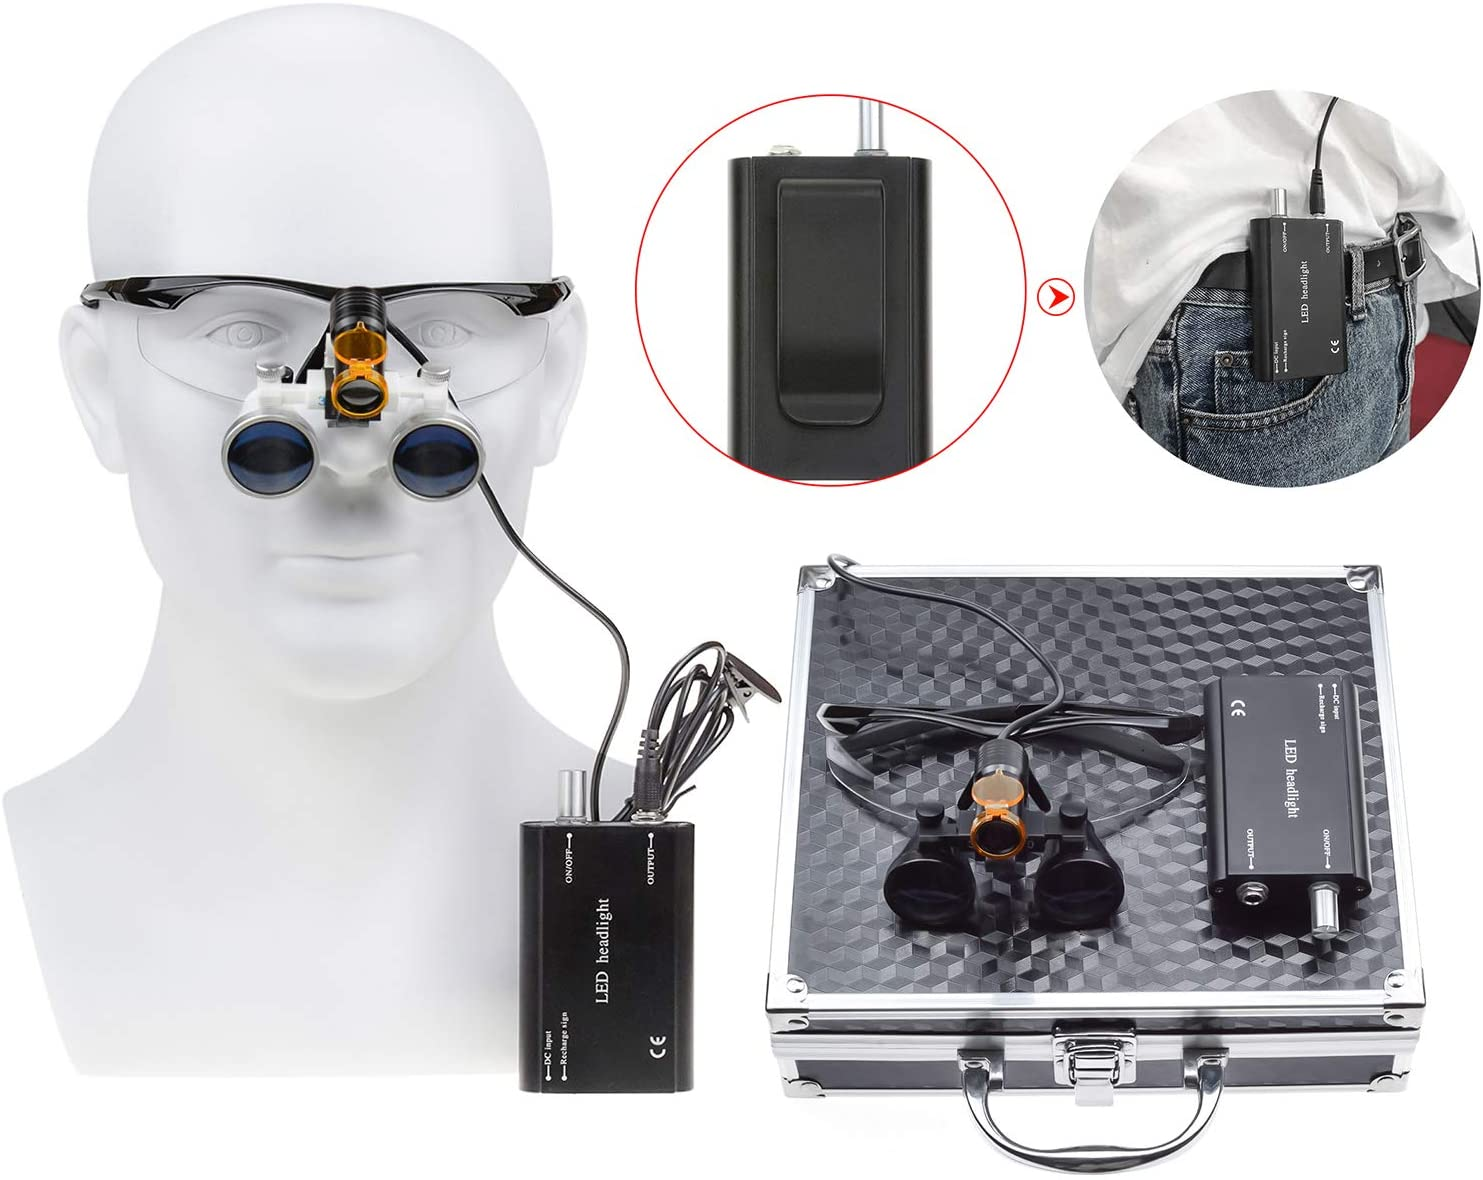 Zgood 3.5X420mm Working Distance Optical Glass Surgical Binocular Loupes + 5W LED Waist-hang Head Lamp with Filter + Black Aluminum Box DY-008